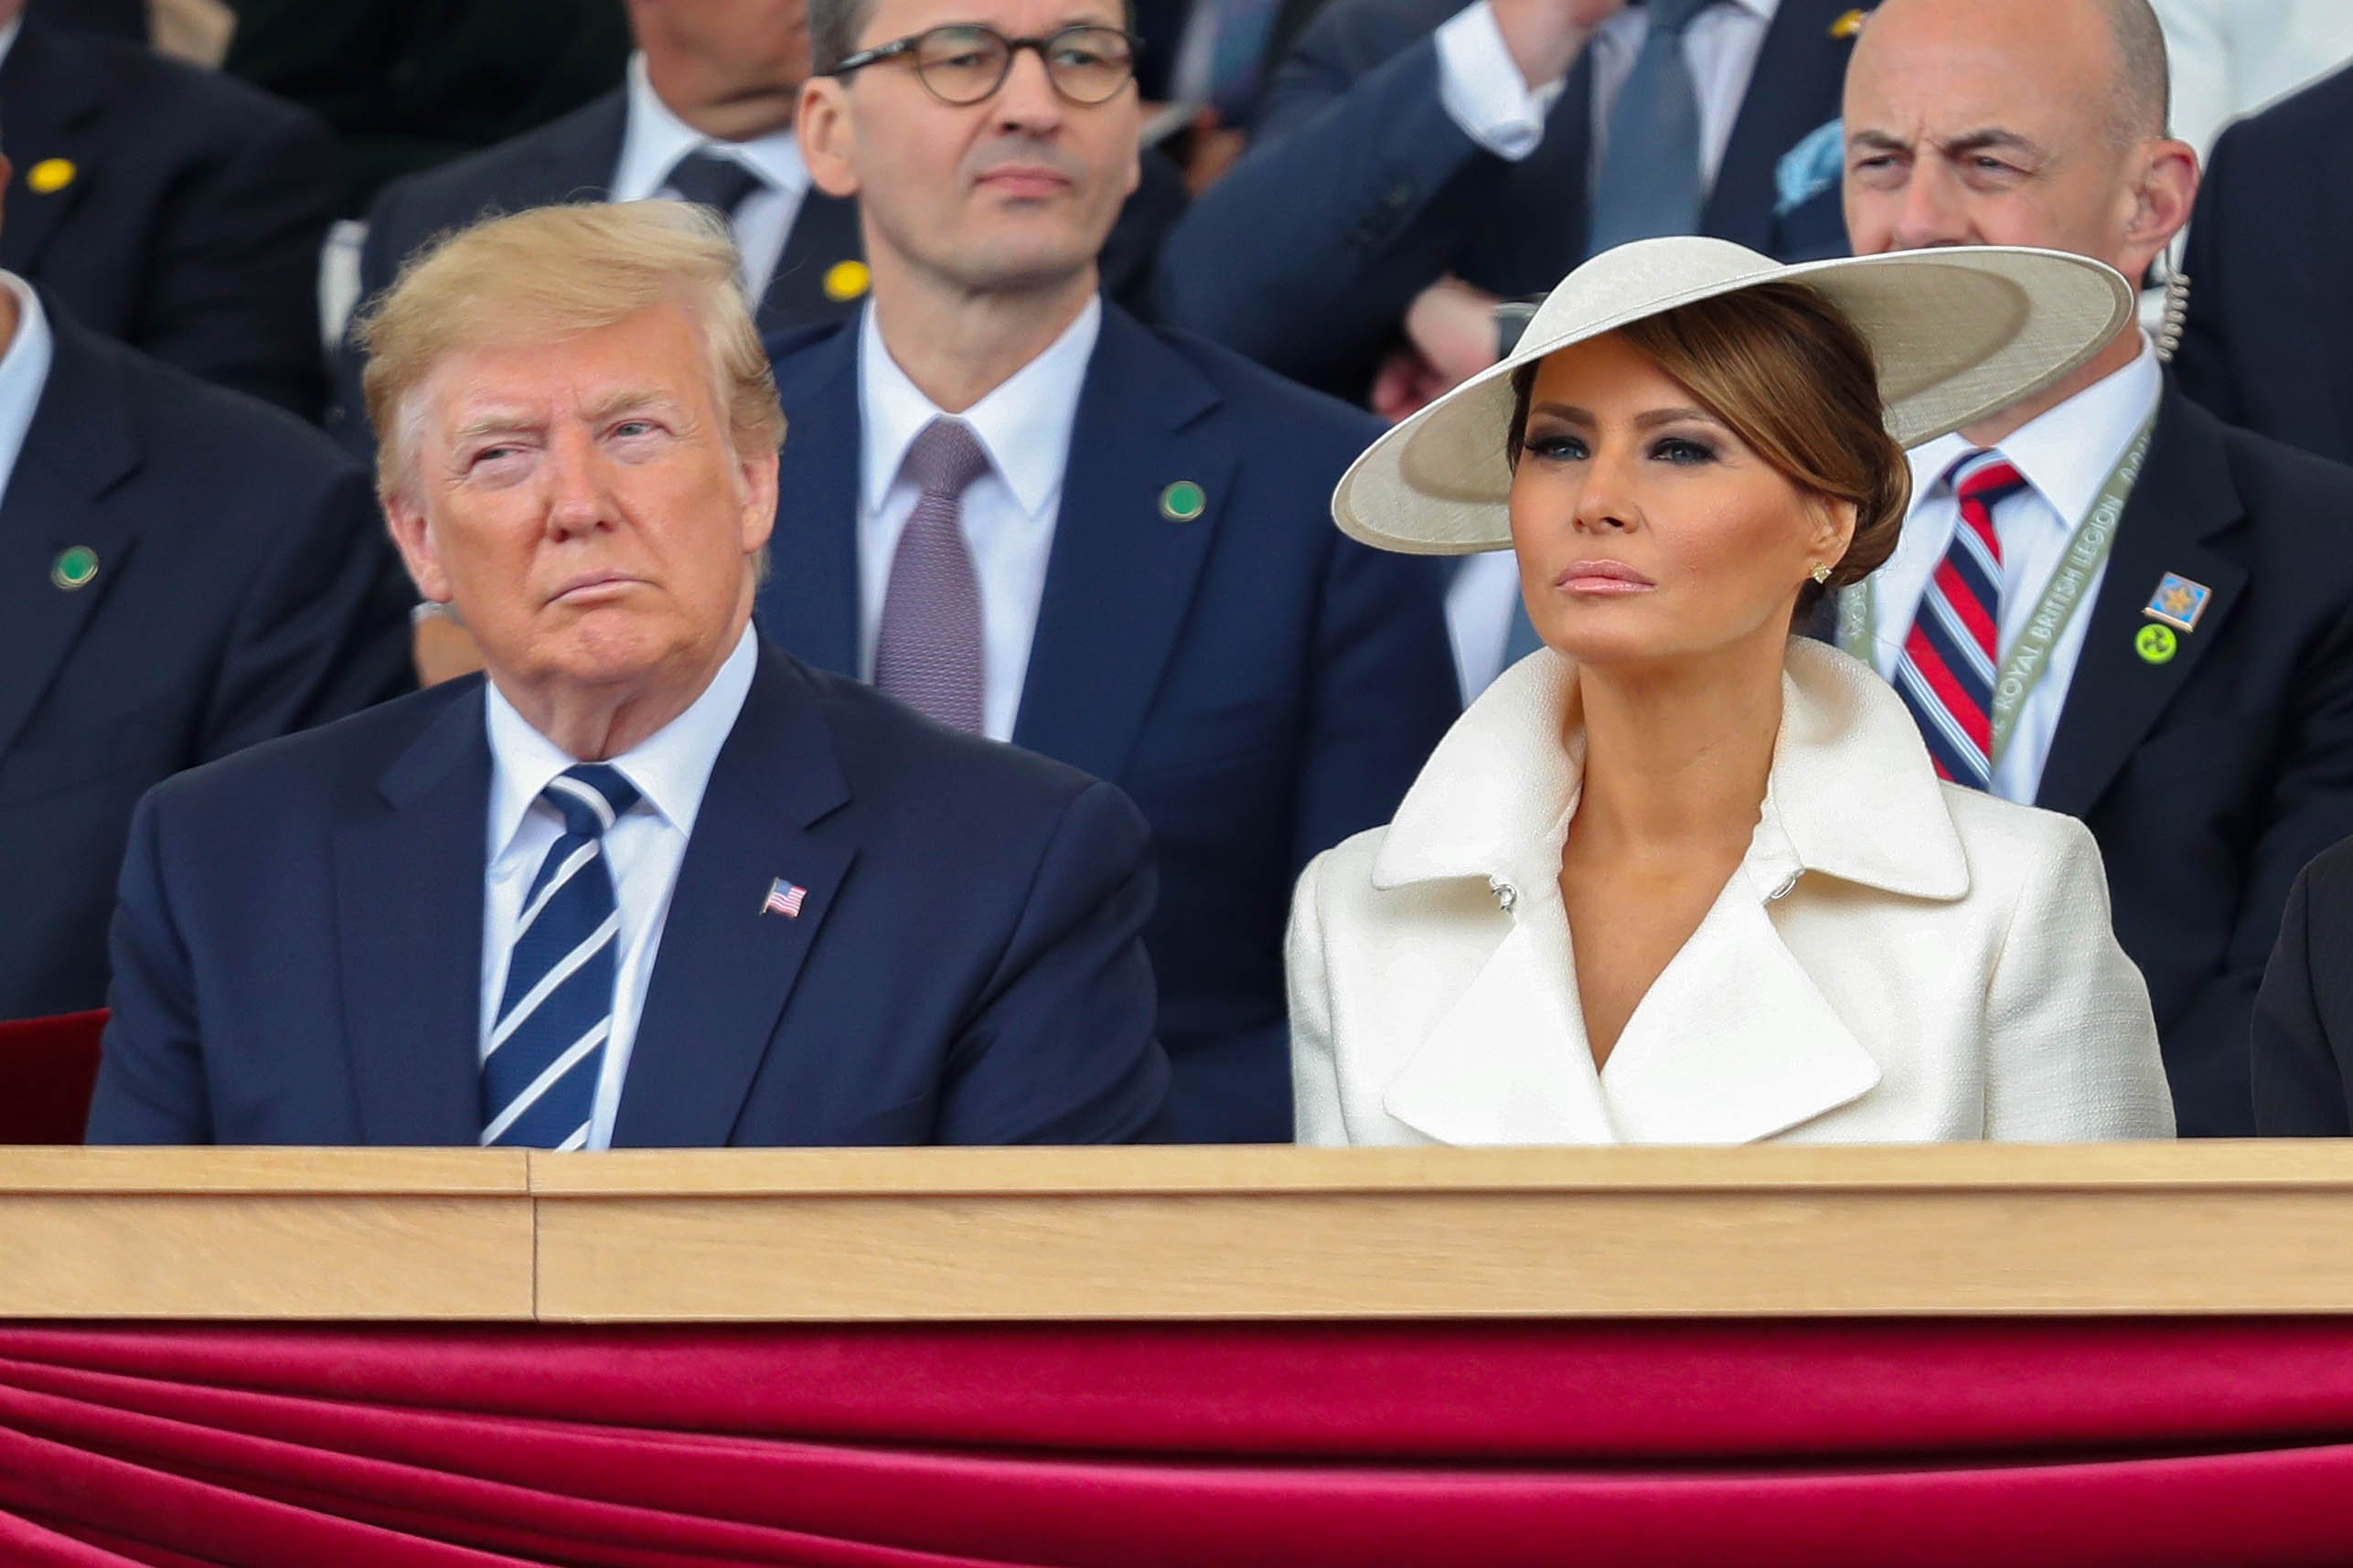 Melania Trump sitting next to Donald Trump at the D-day 75 Commemorations in Portsmouth, England | Photo: Getty Images